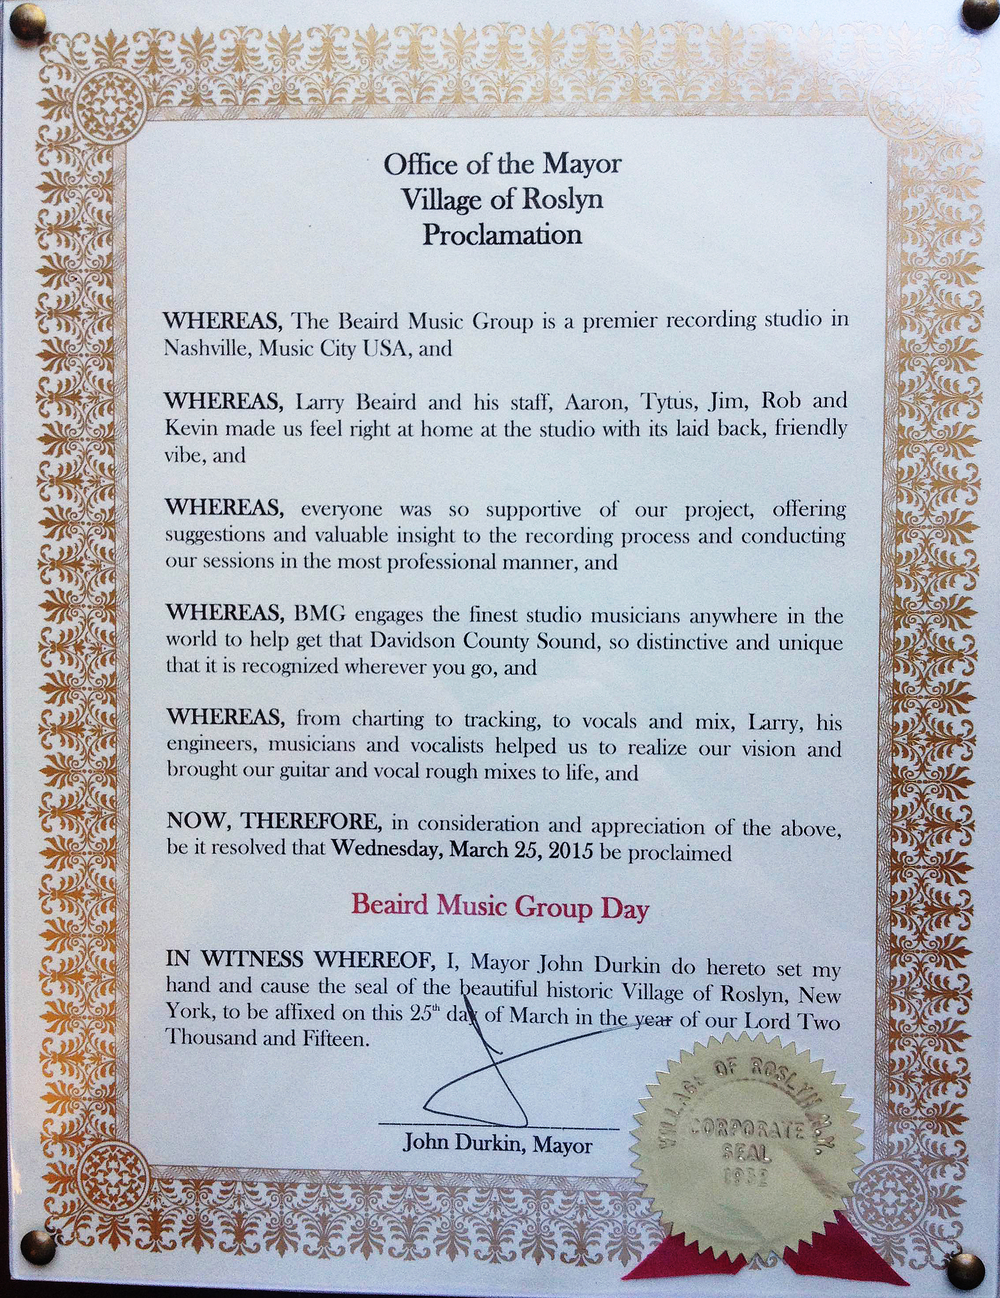 It's official! John Durkin, mayor of Roslyn NY, has proclaimed today, March 25, 2015 as Beaird Music Group Day.  We're honored! Happy Beaird Music Group Day everybody!